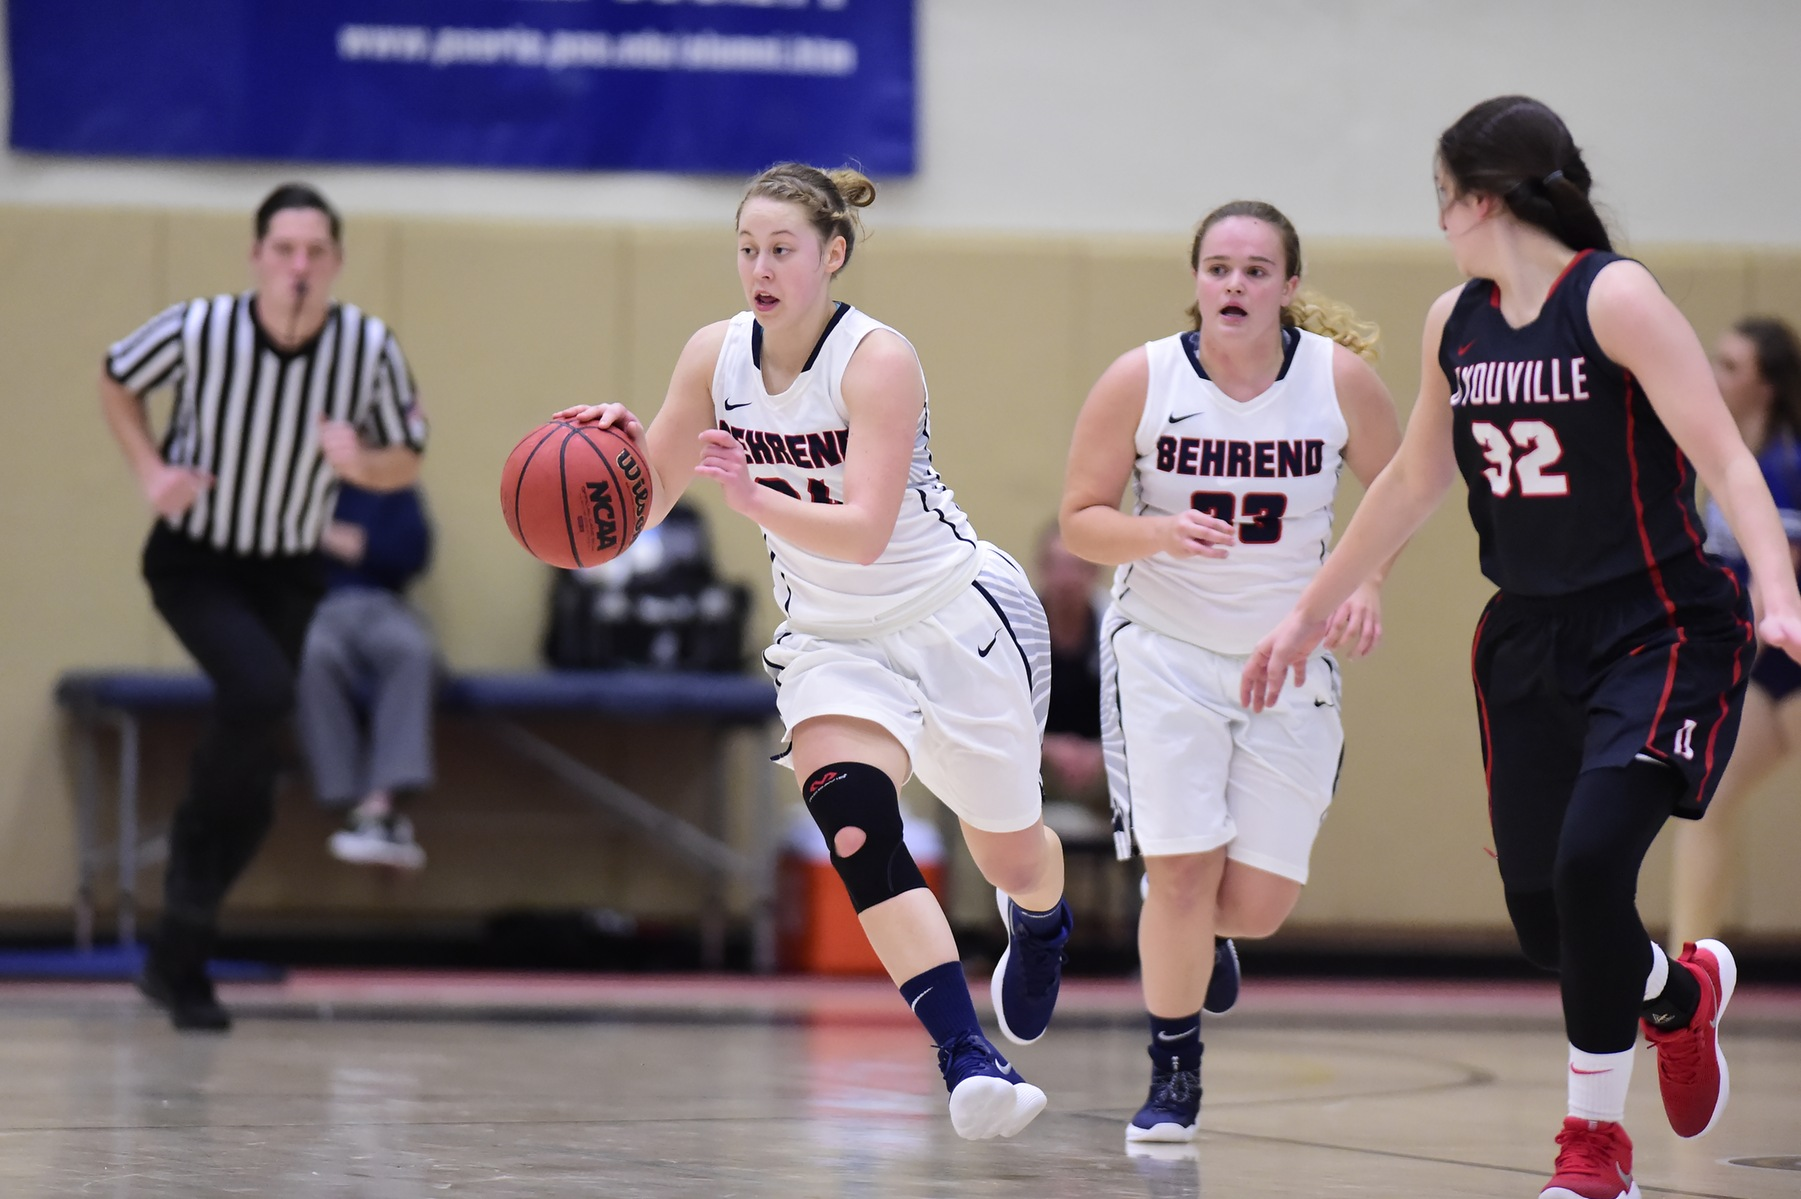 Grove City Outlasts Women's Basketball